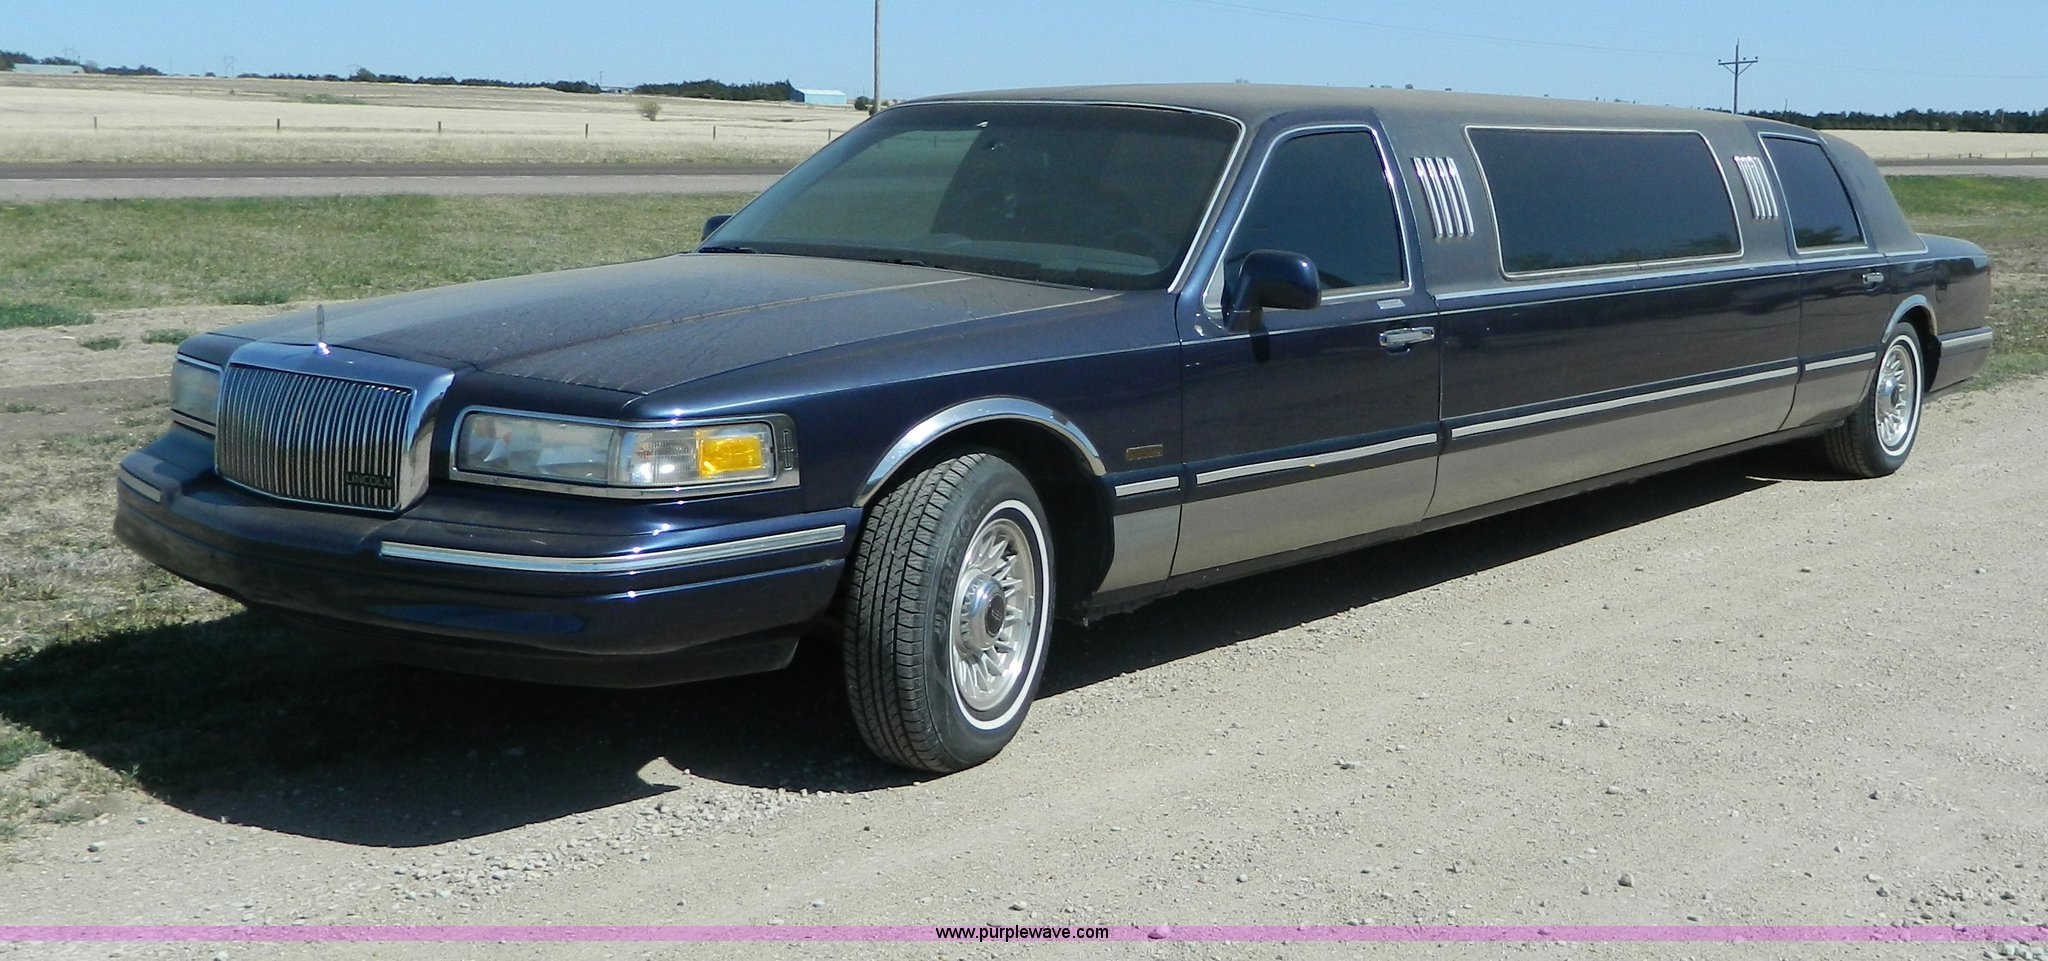 1997 Lincoln Town Car Executive Limousine Item Al9991 So